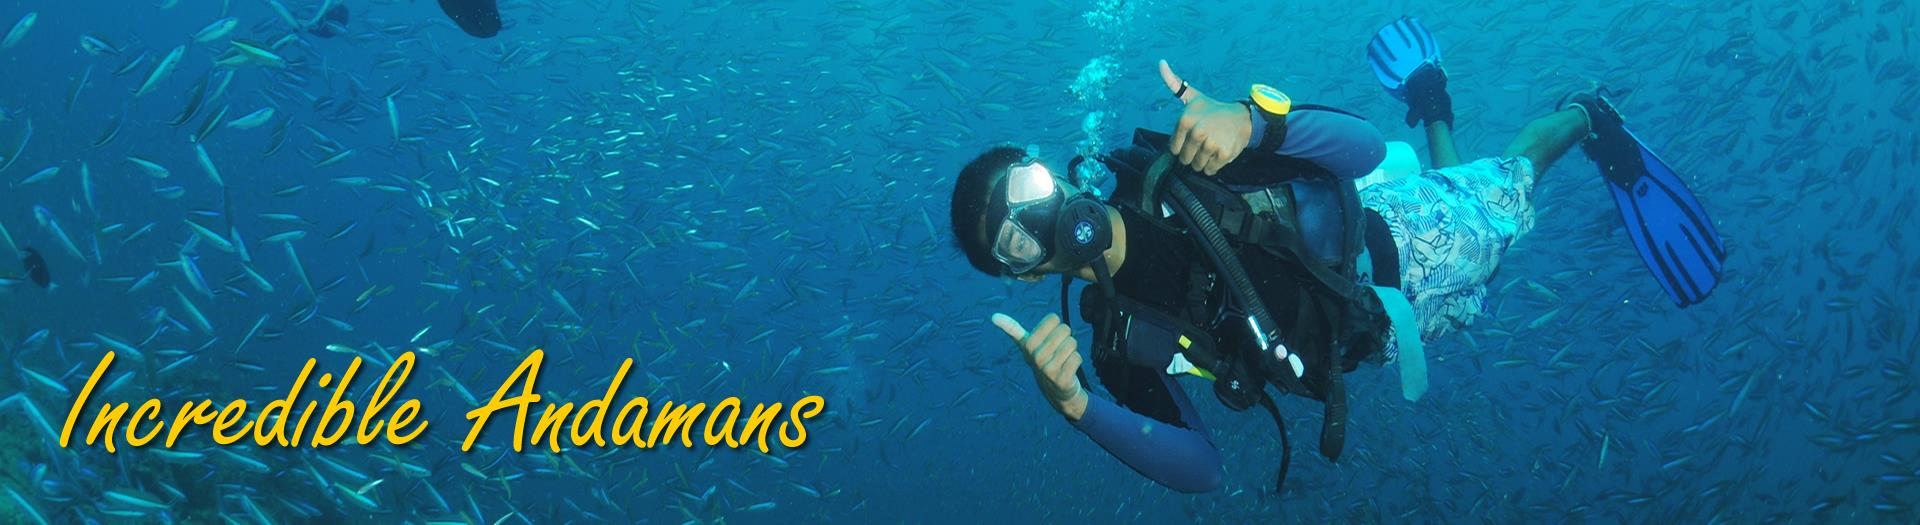 INCREDIBLE ANDAMAN TOUR  DAY 1: ARRIVE PORT BLAIR  On arrive at Port Blair airport, our representative will receive and escorted to the hotel. After check-in at the hotel and little relax, we proceed to covers Cellular Jail (National Memori - by The Sair, Bhopal